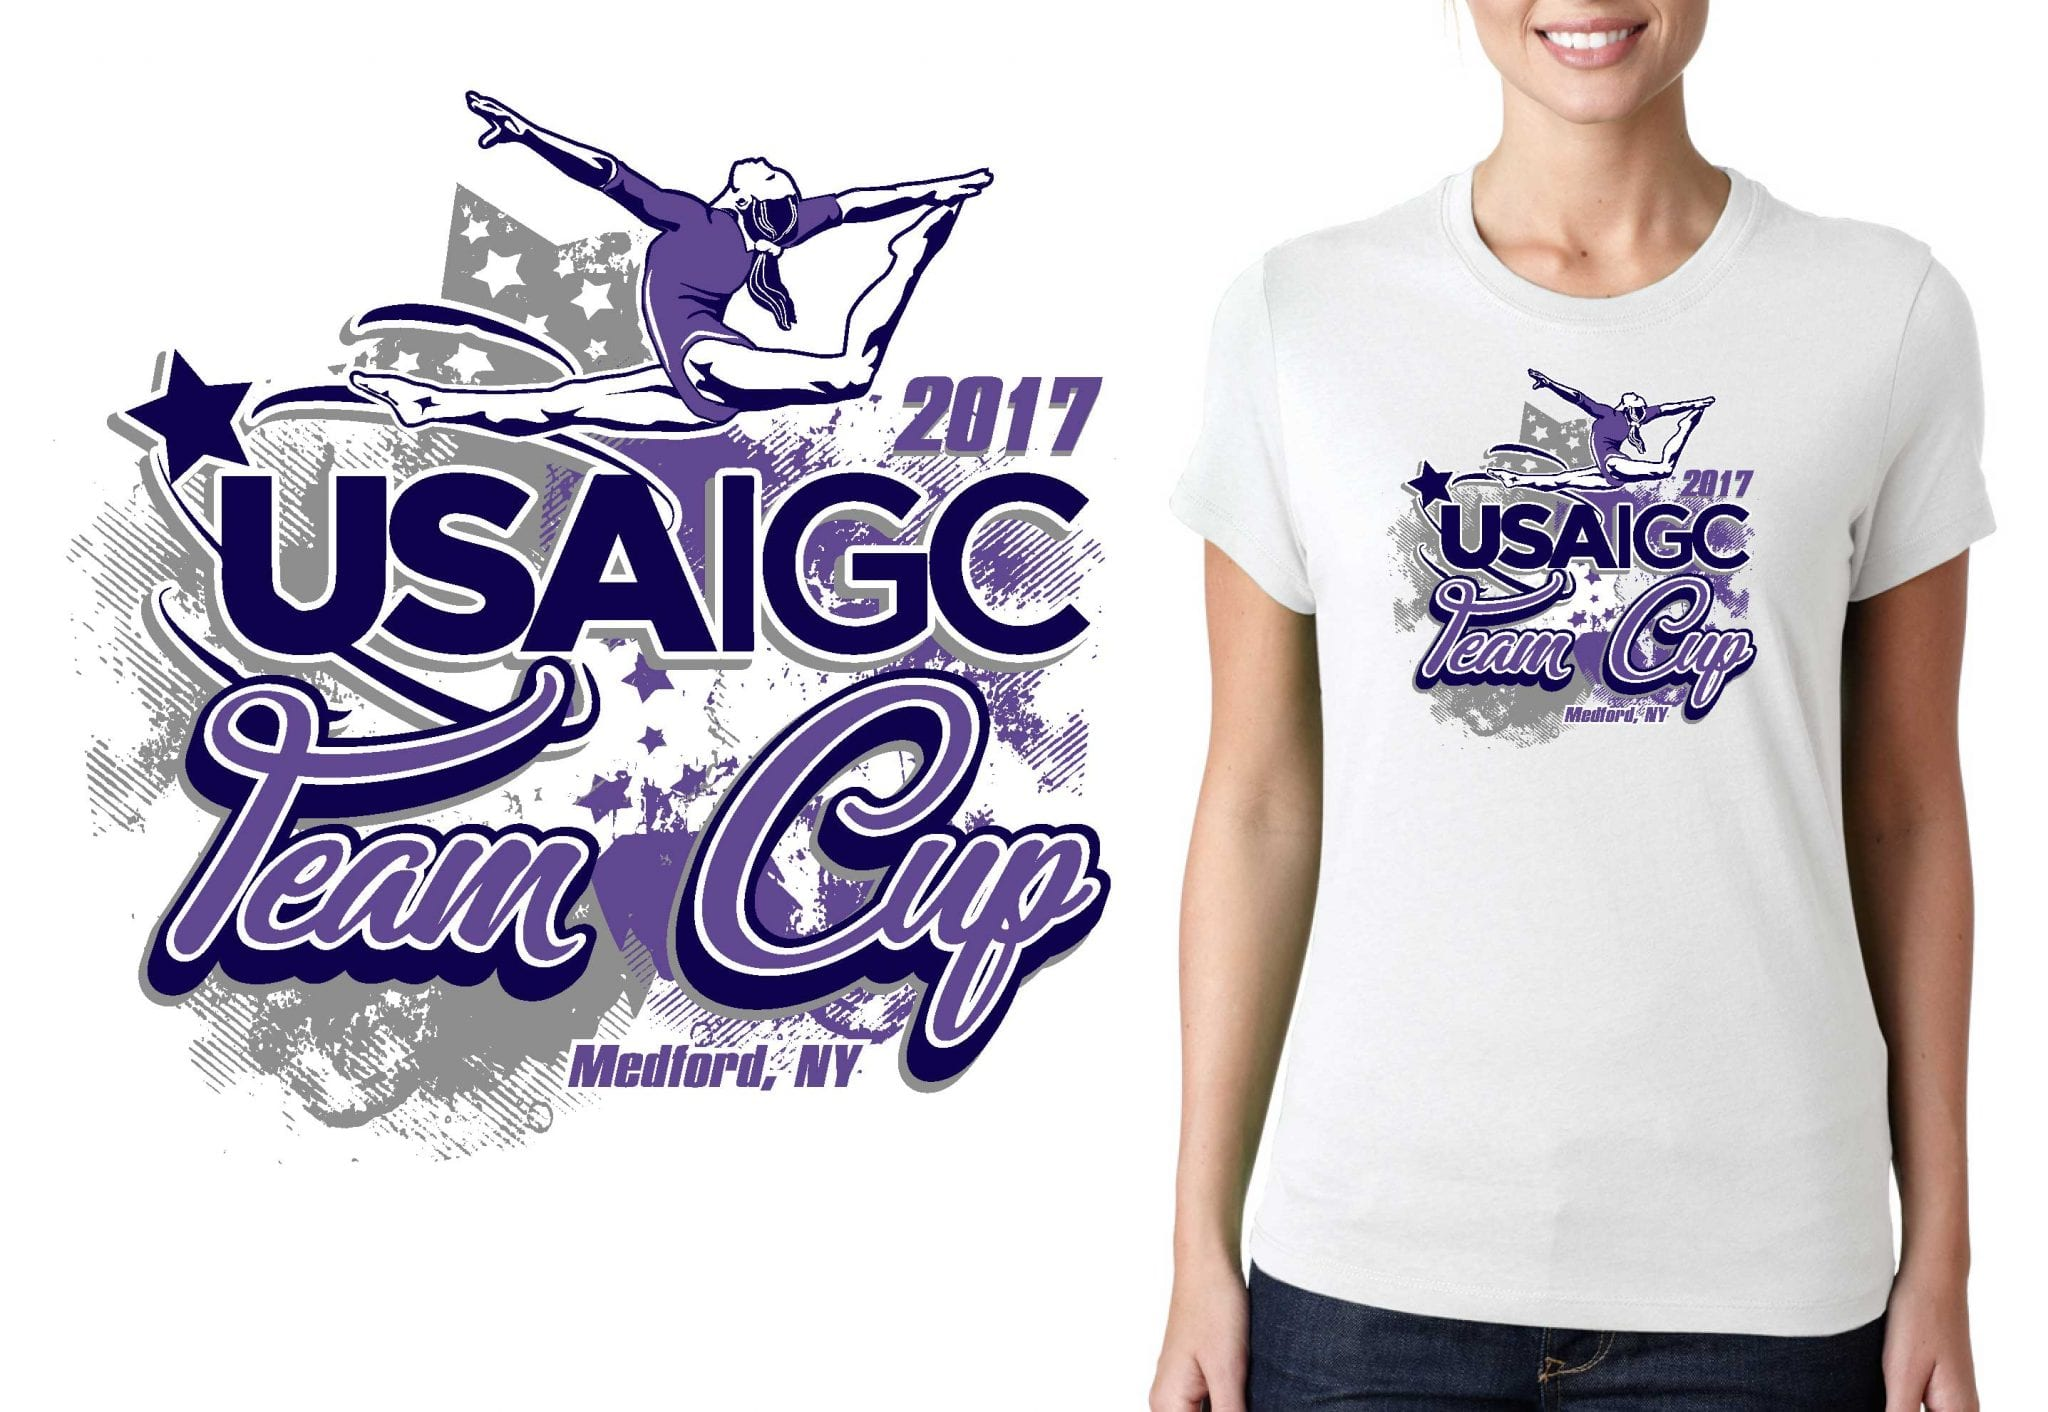 2017 USAIGC Team Cup vector logo design for gymnastics t-shirt UrArtStudio